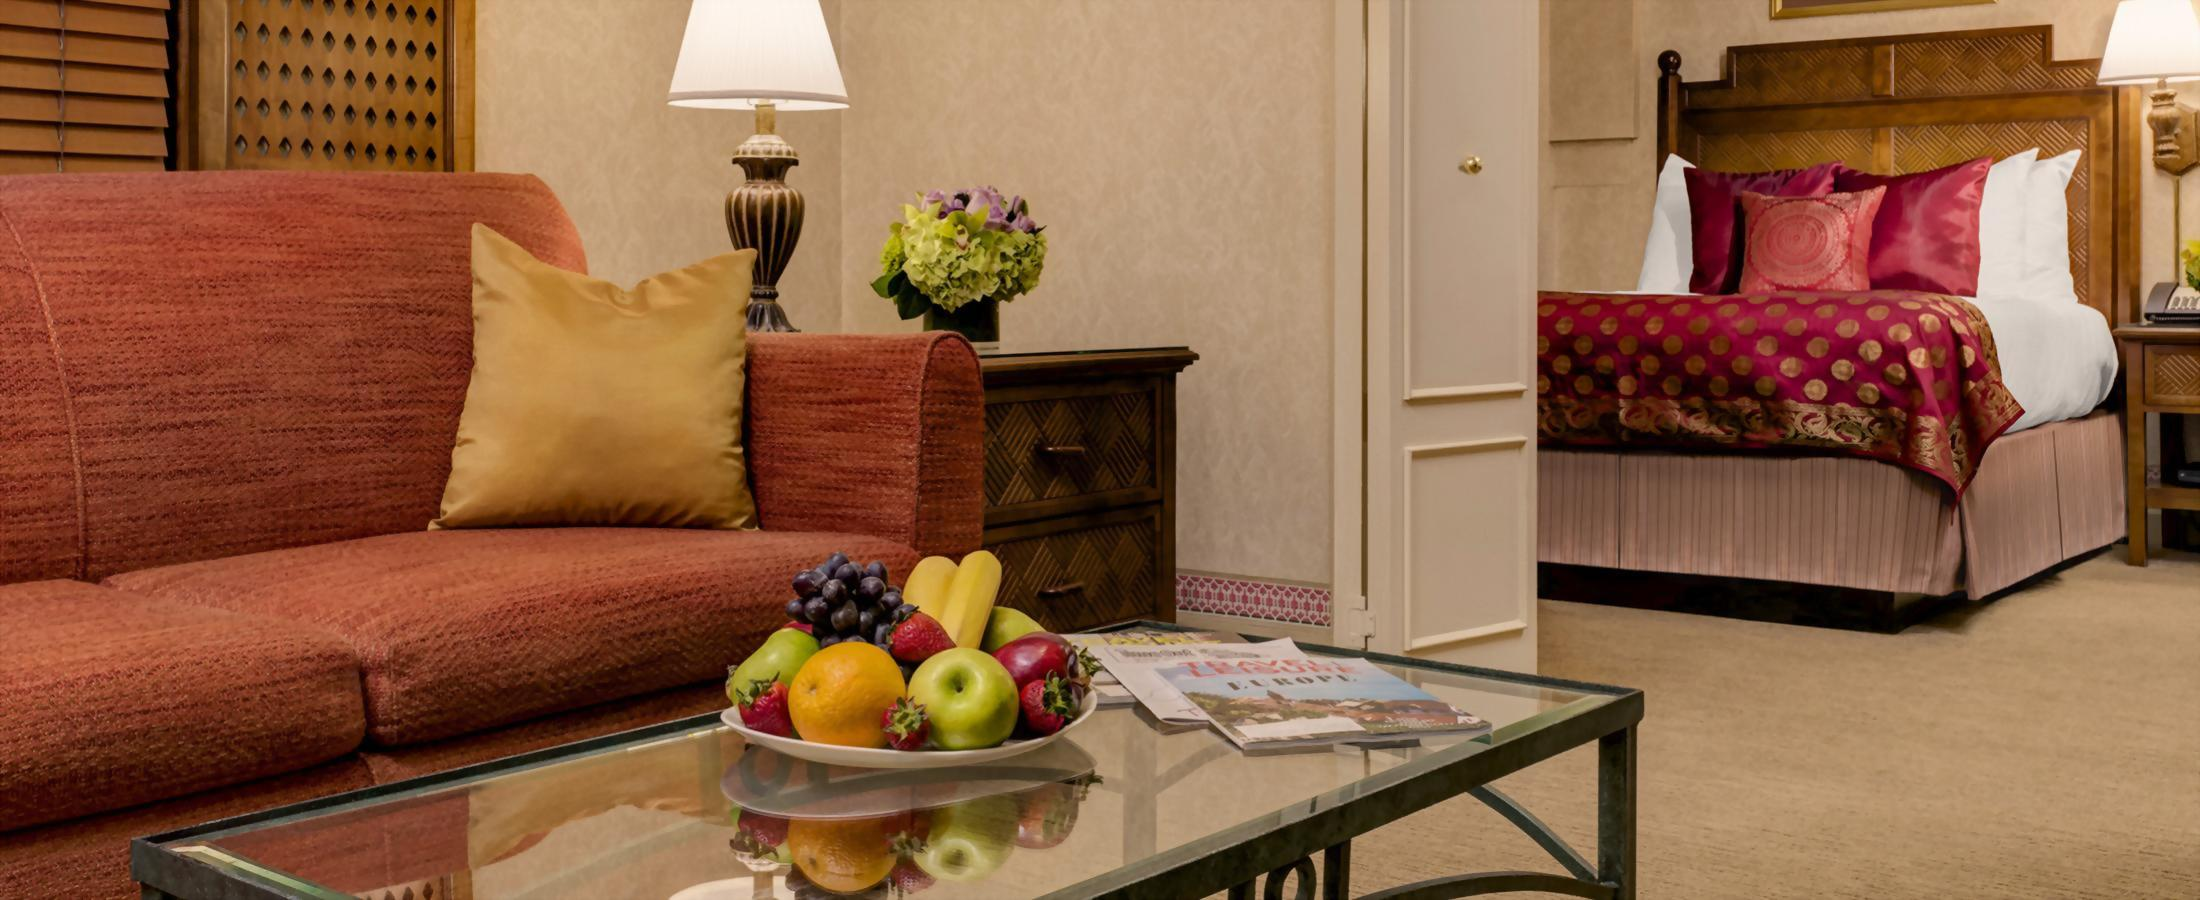 The mini suite at the Casablanca has two rooms separated by french doors.